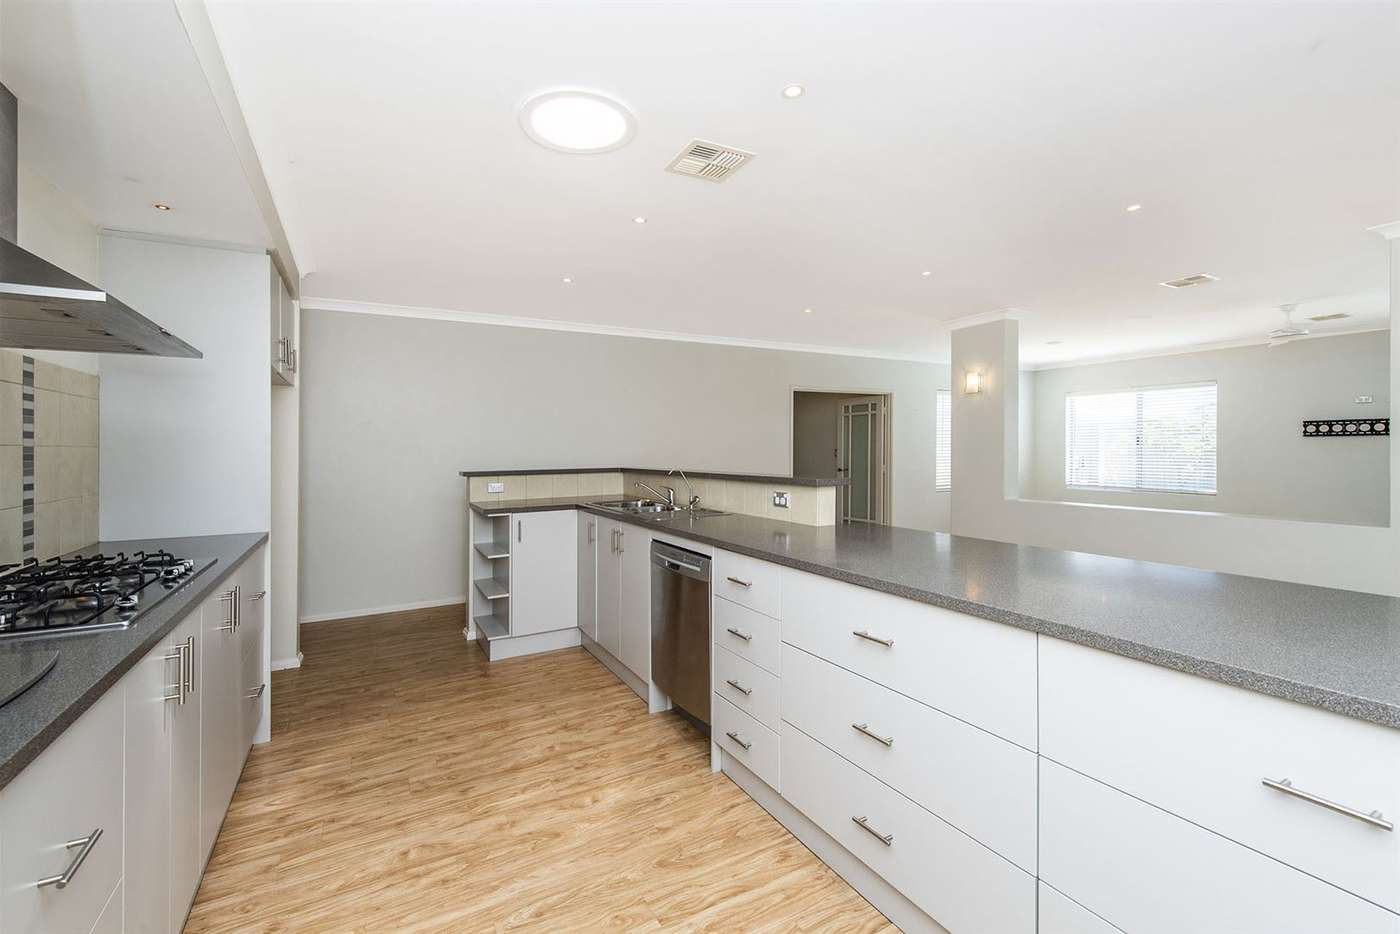 Sixth view of Homely house listing, 9 Tassell Way, Ravenswood WA 6208